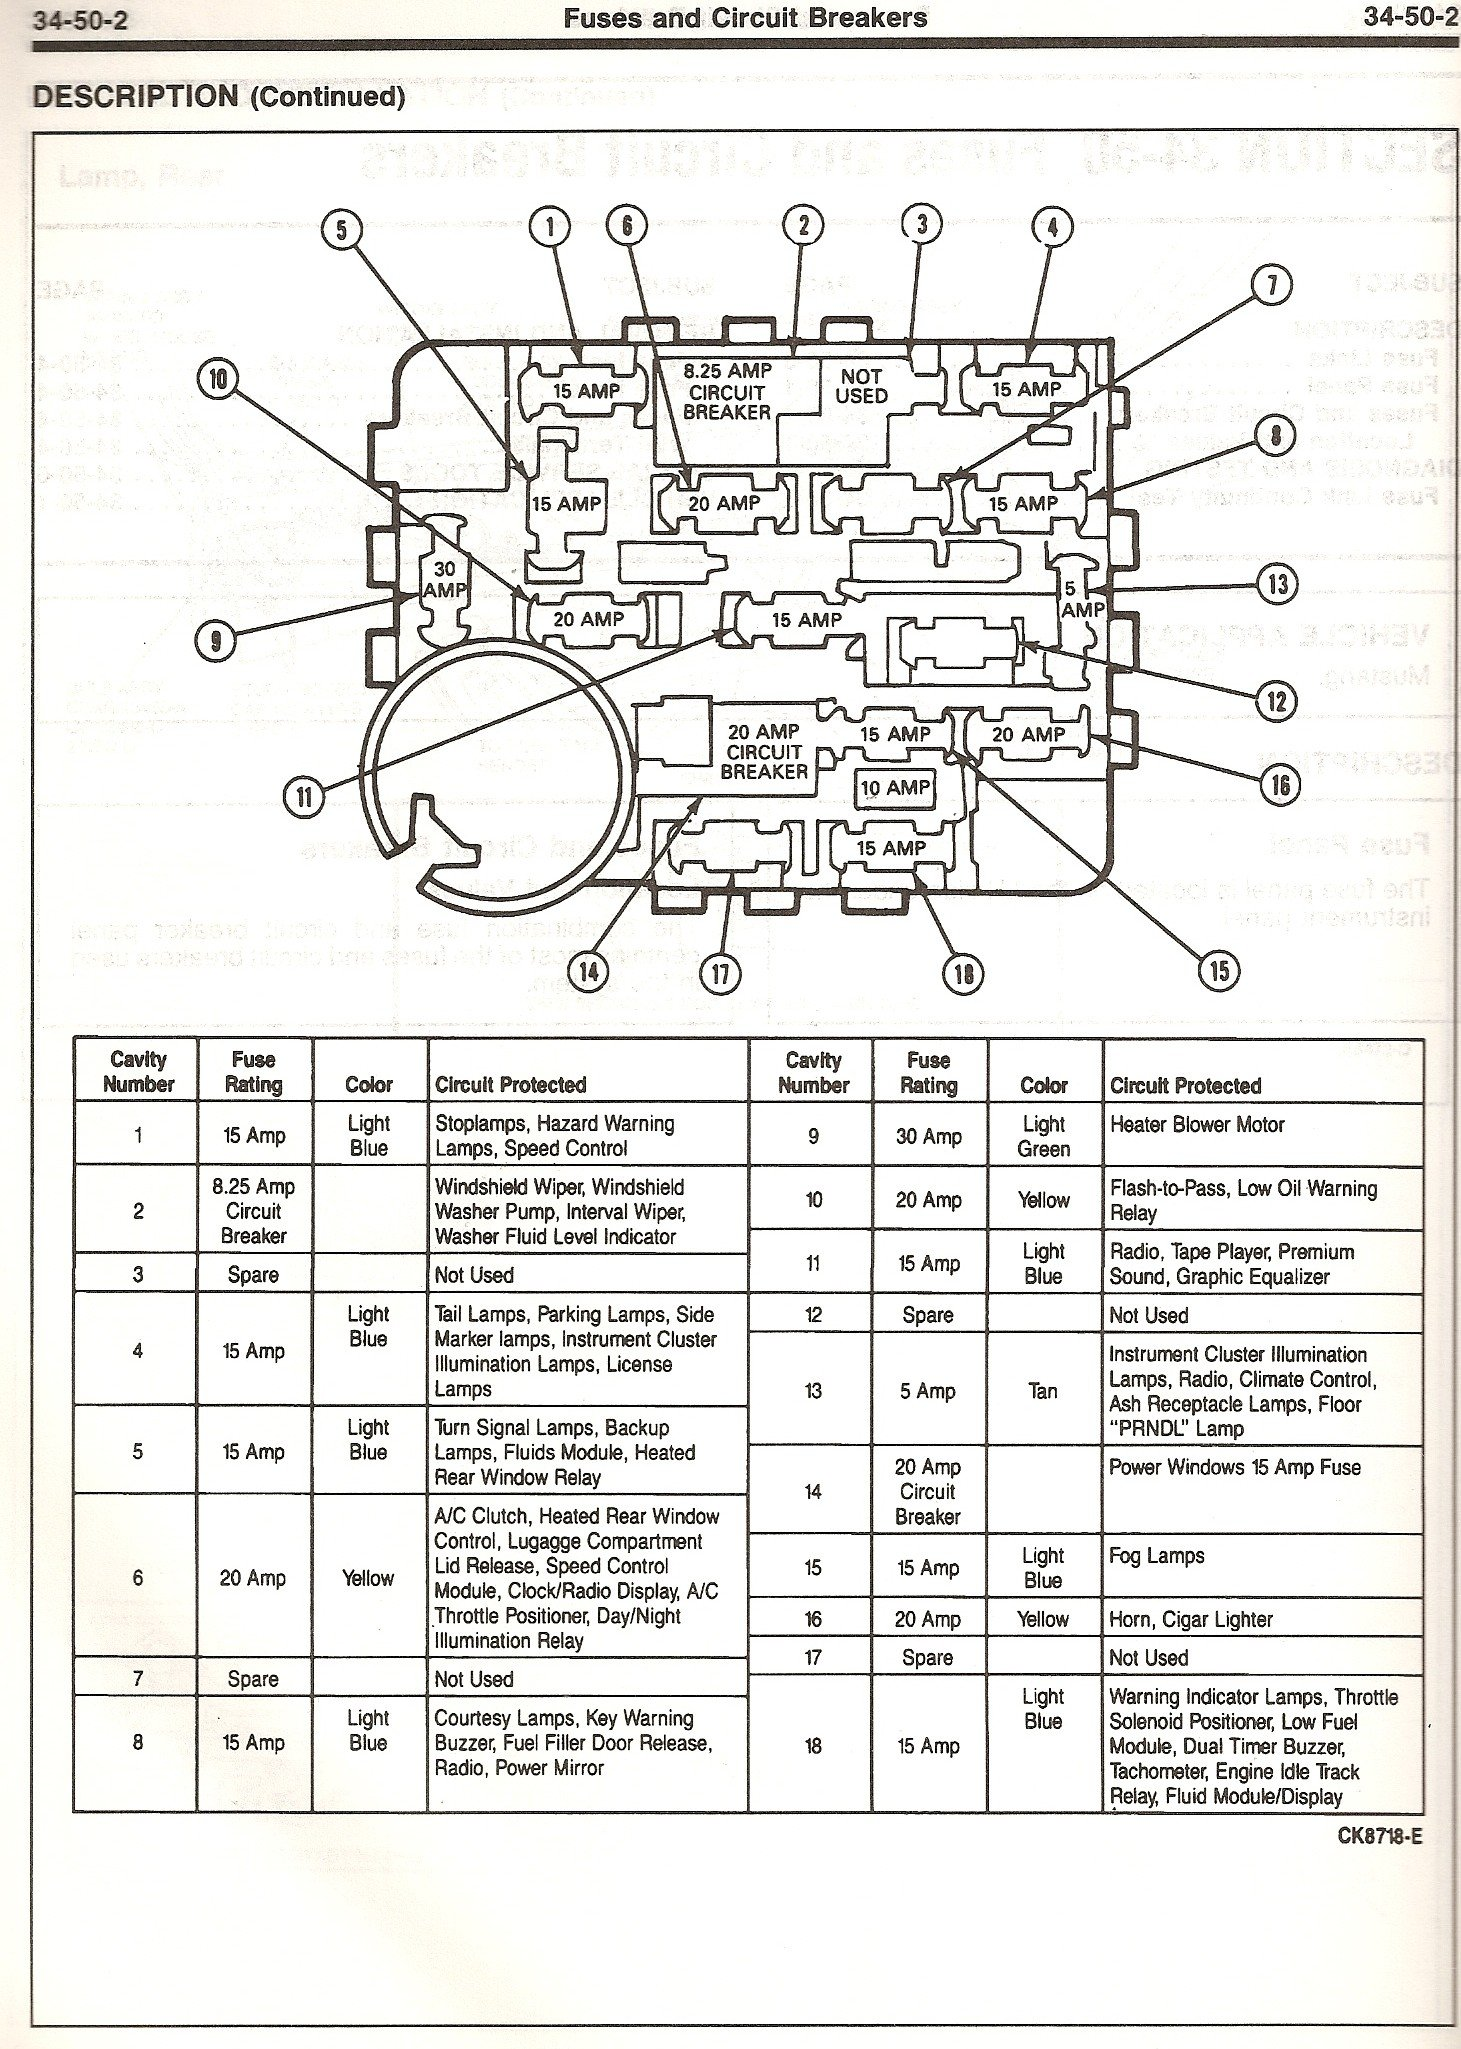 1999 Range Rover Fuse Box Auto Electrical Wiring Diagram E500 1990 2 3 Mustang Missing Panel